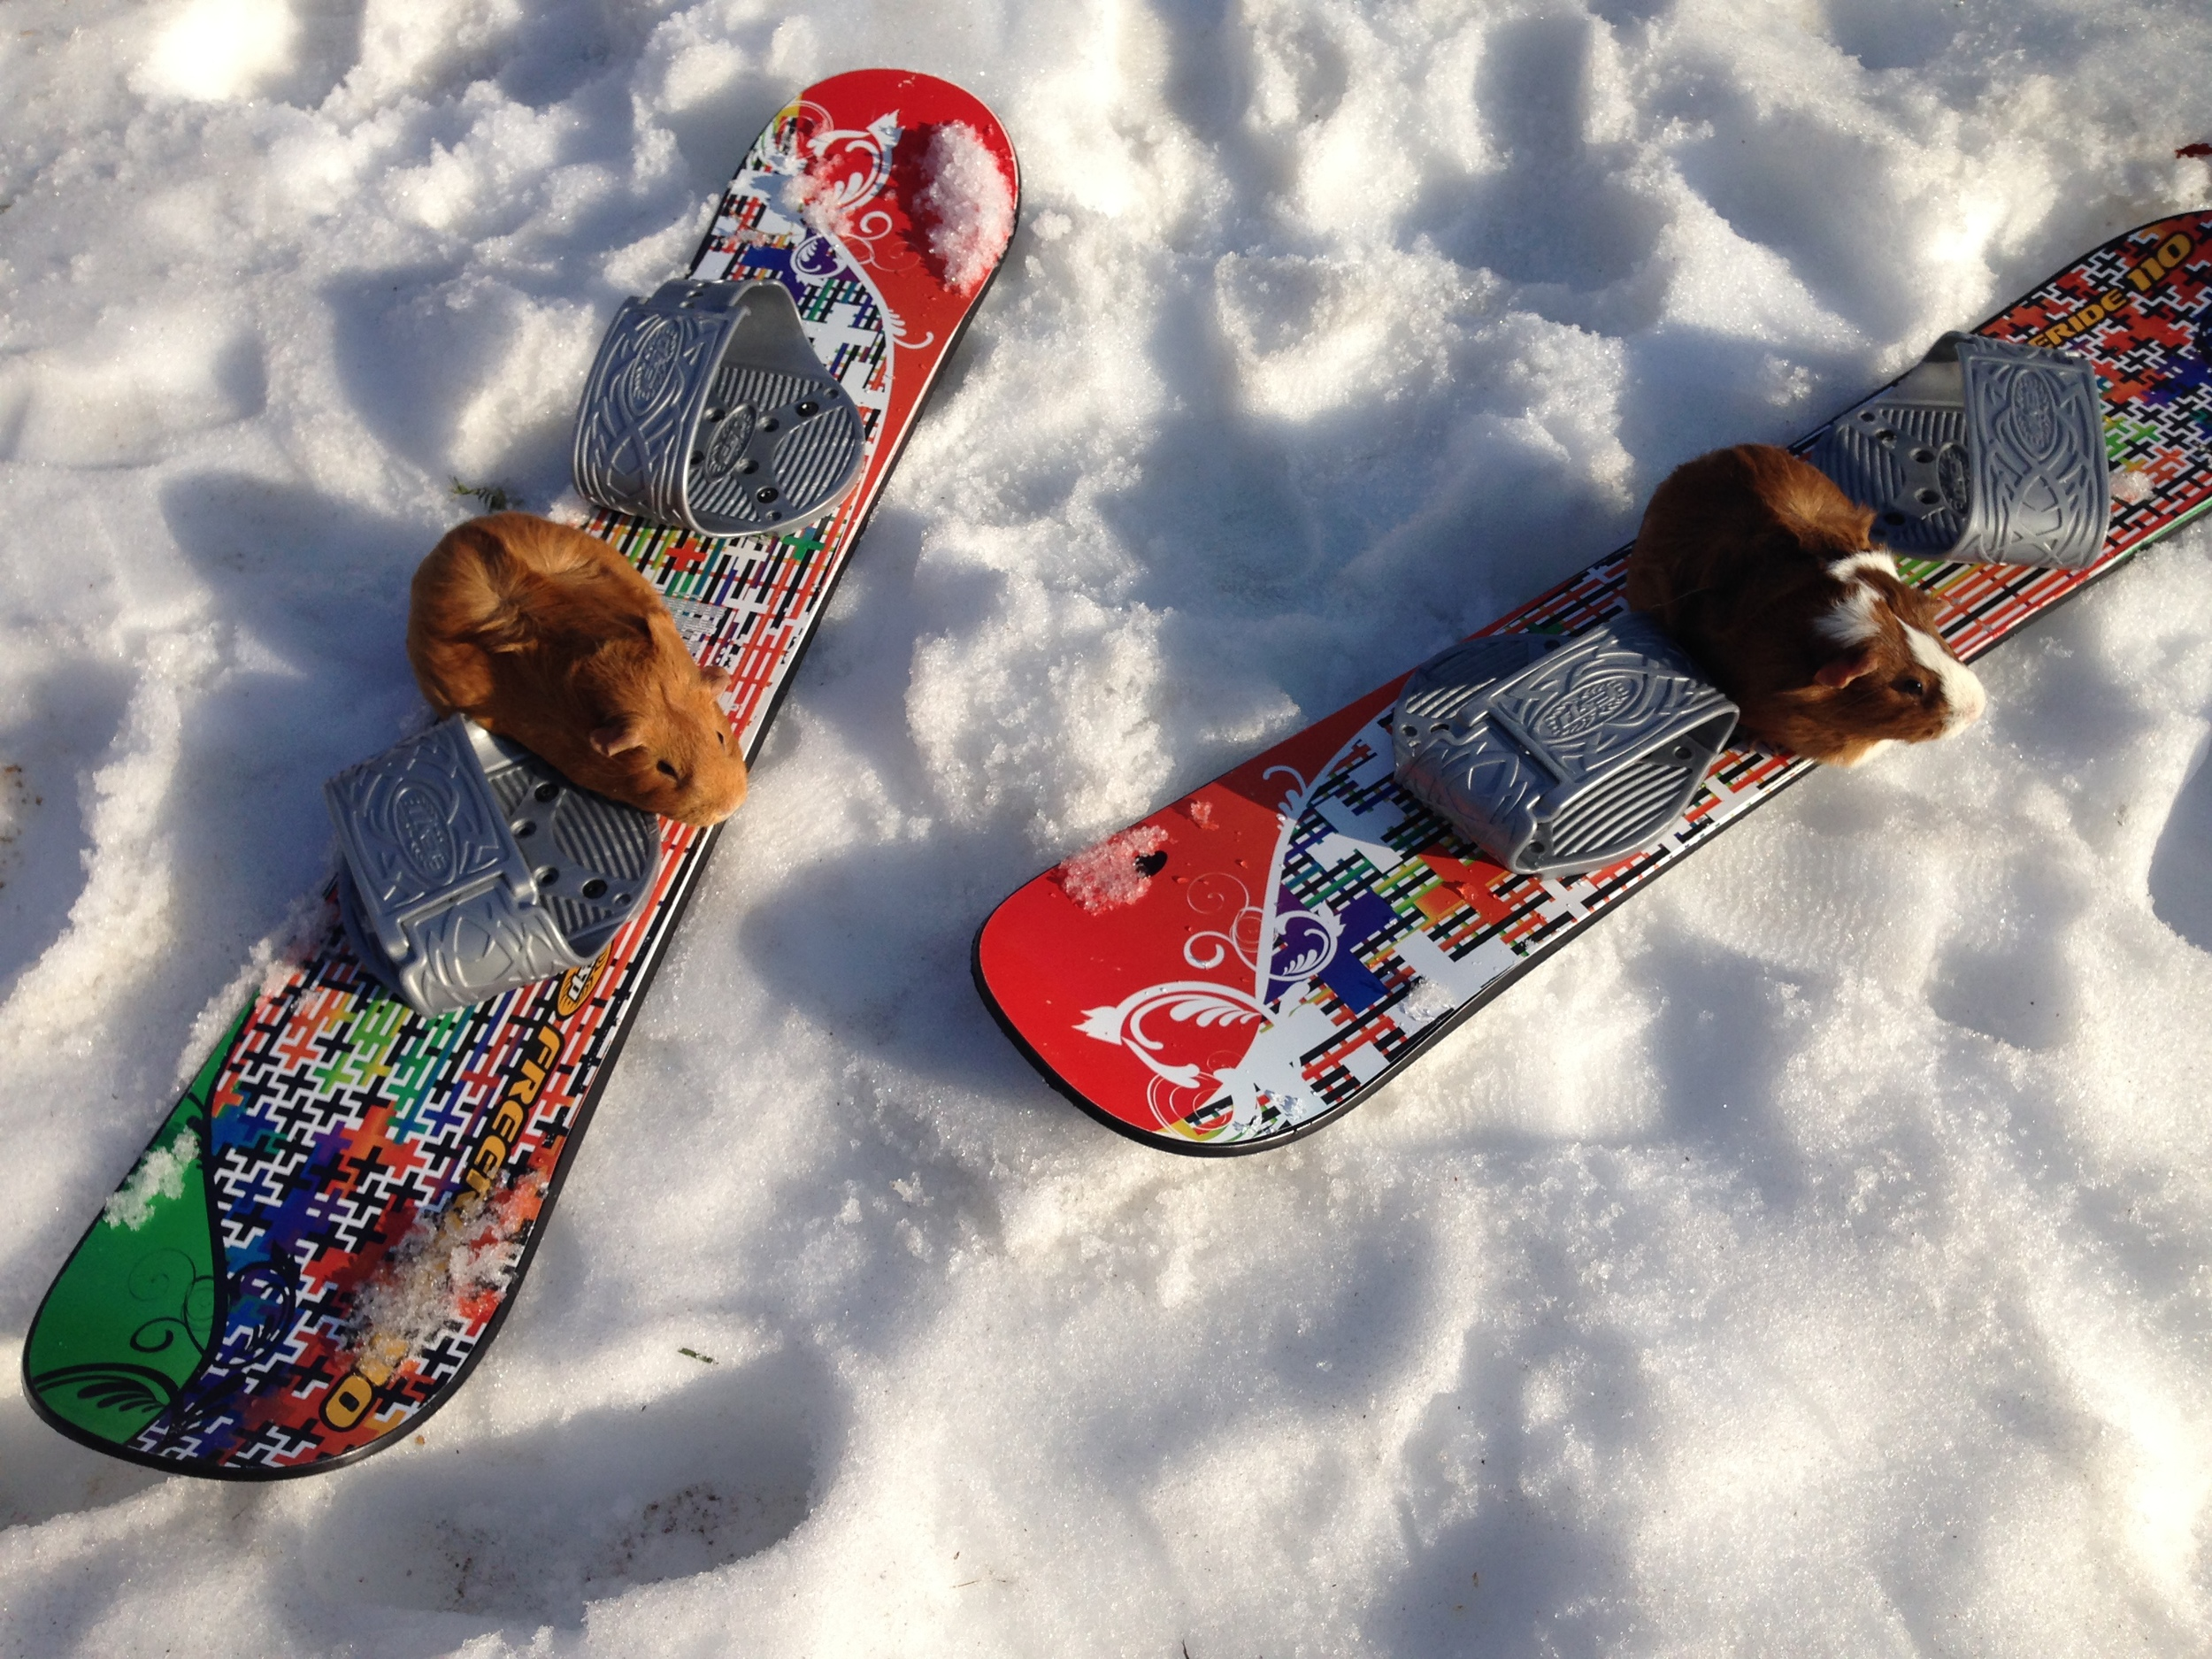 Bud-Bud and Boo try out snowboarding.